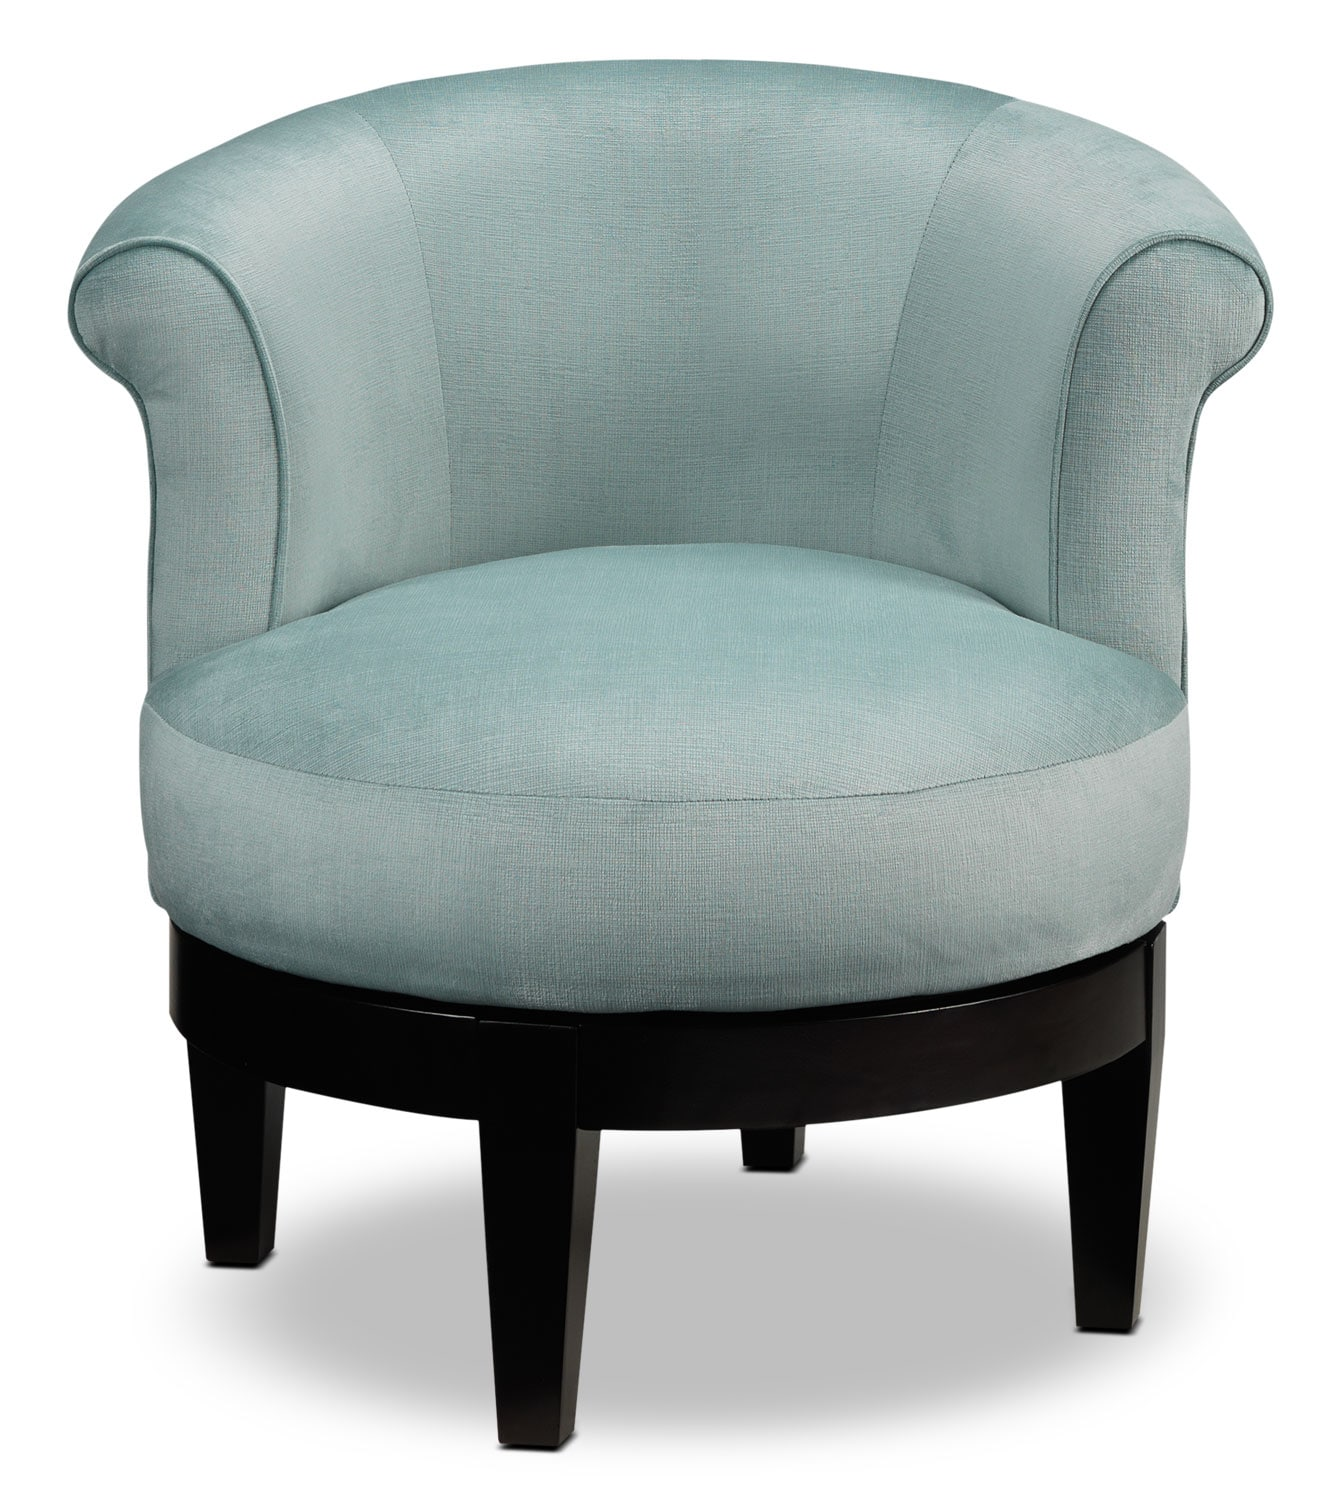 Kalosa Swivel Accent Chair: Attica Swivel Accent Chair - Aqua